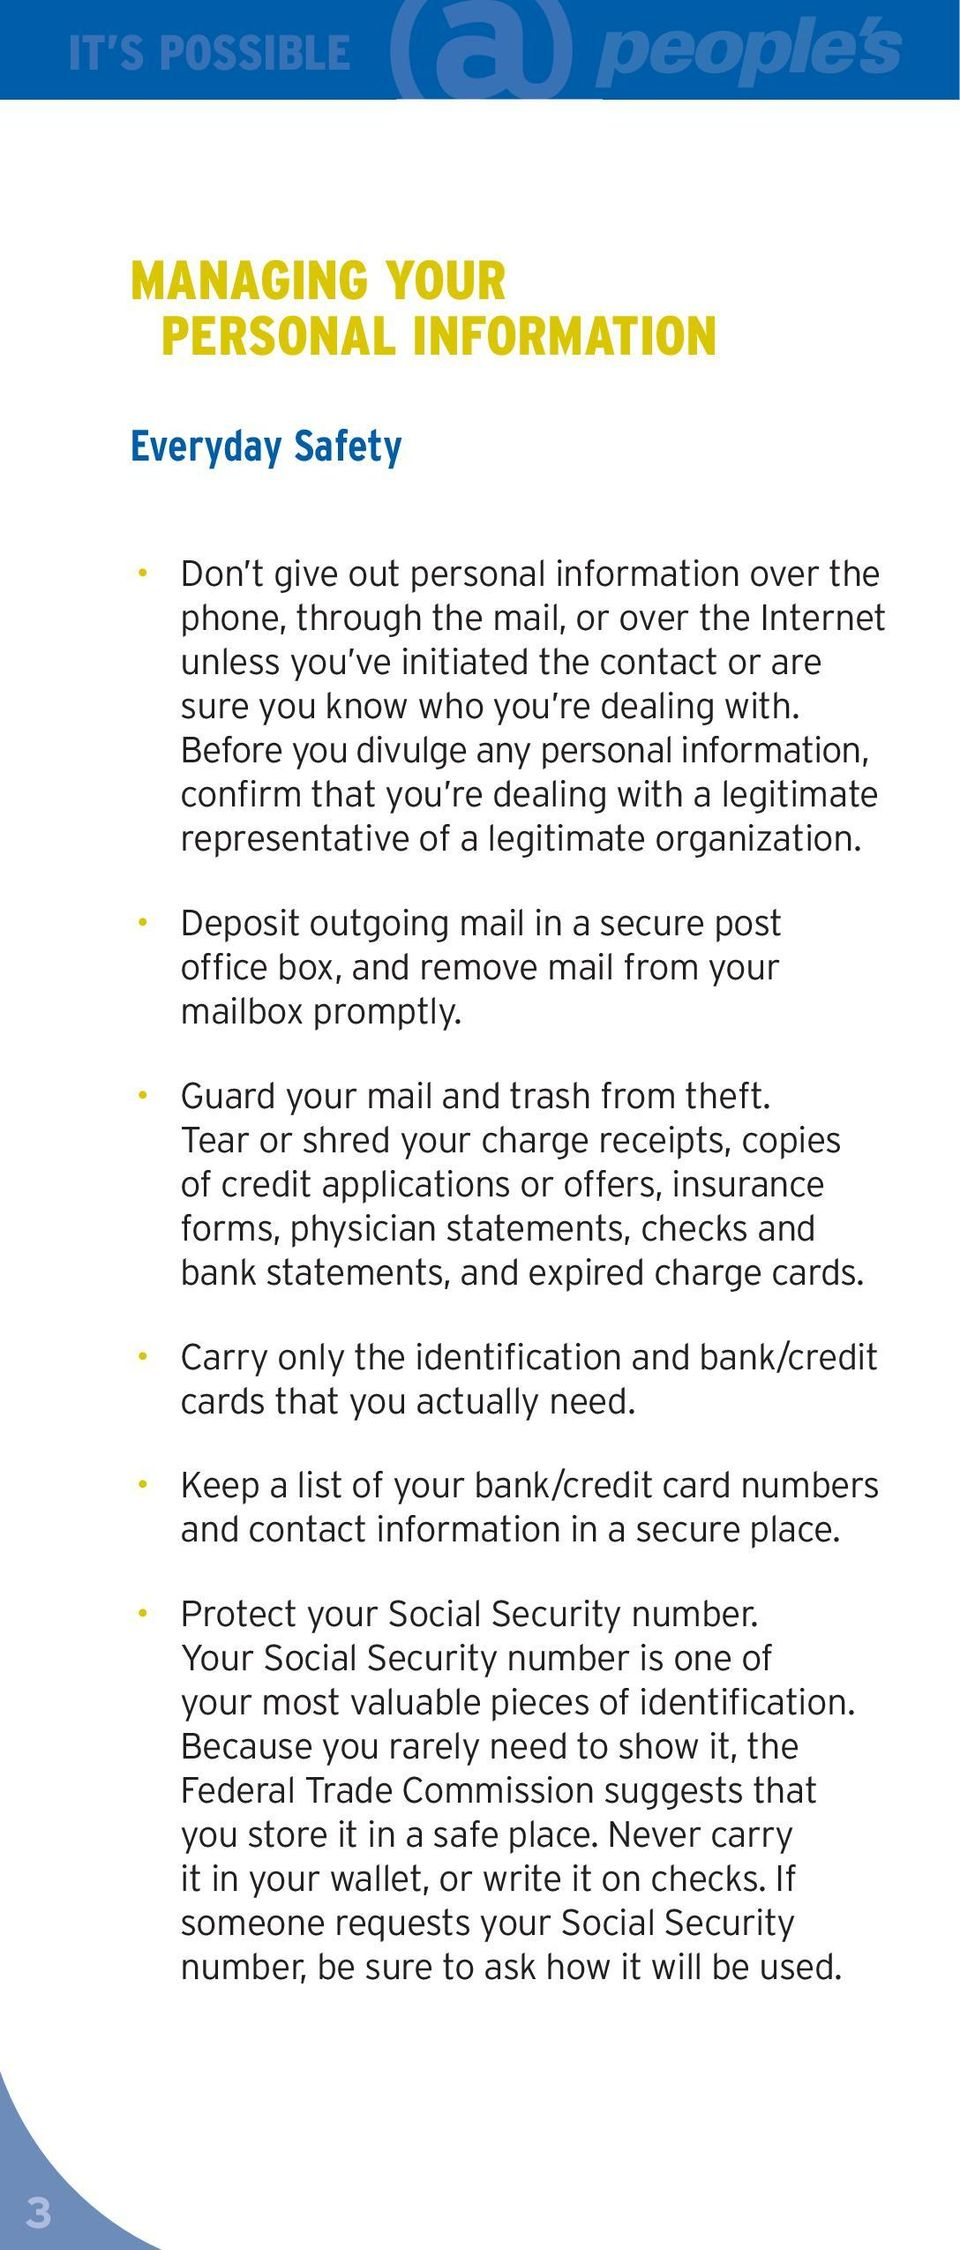 Deposit outgoing mail in a secure post office box, and remove mail from your mailbox promptly. Guard your mail and trash from theft.